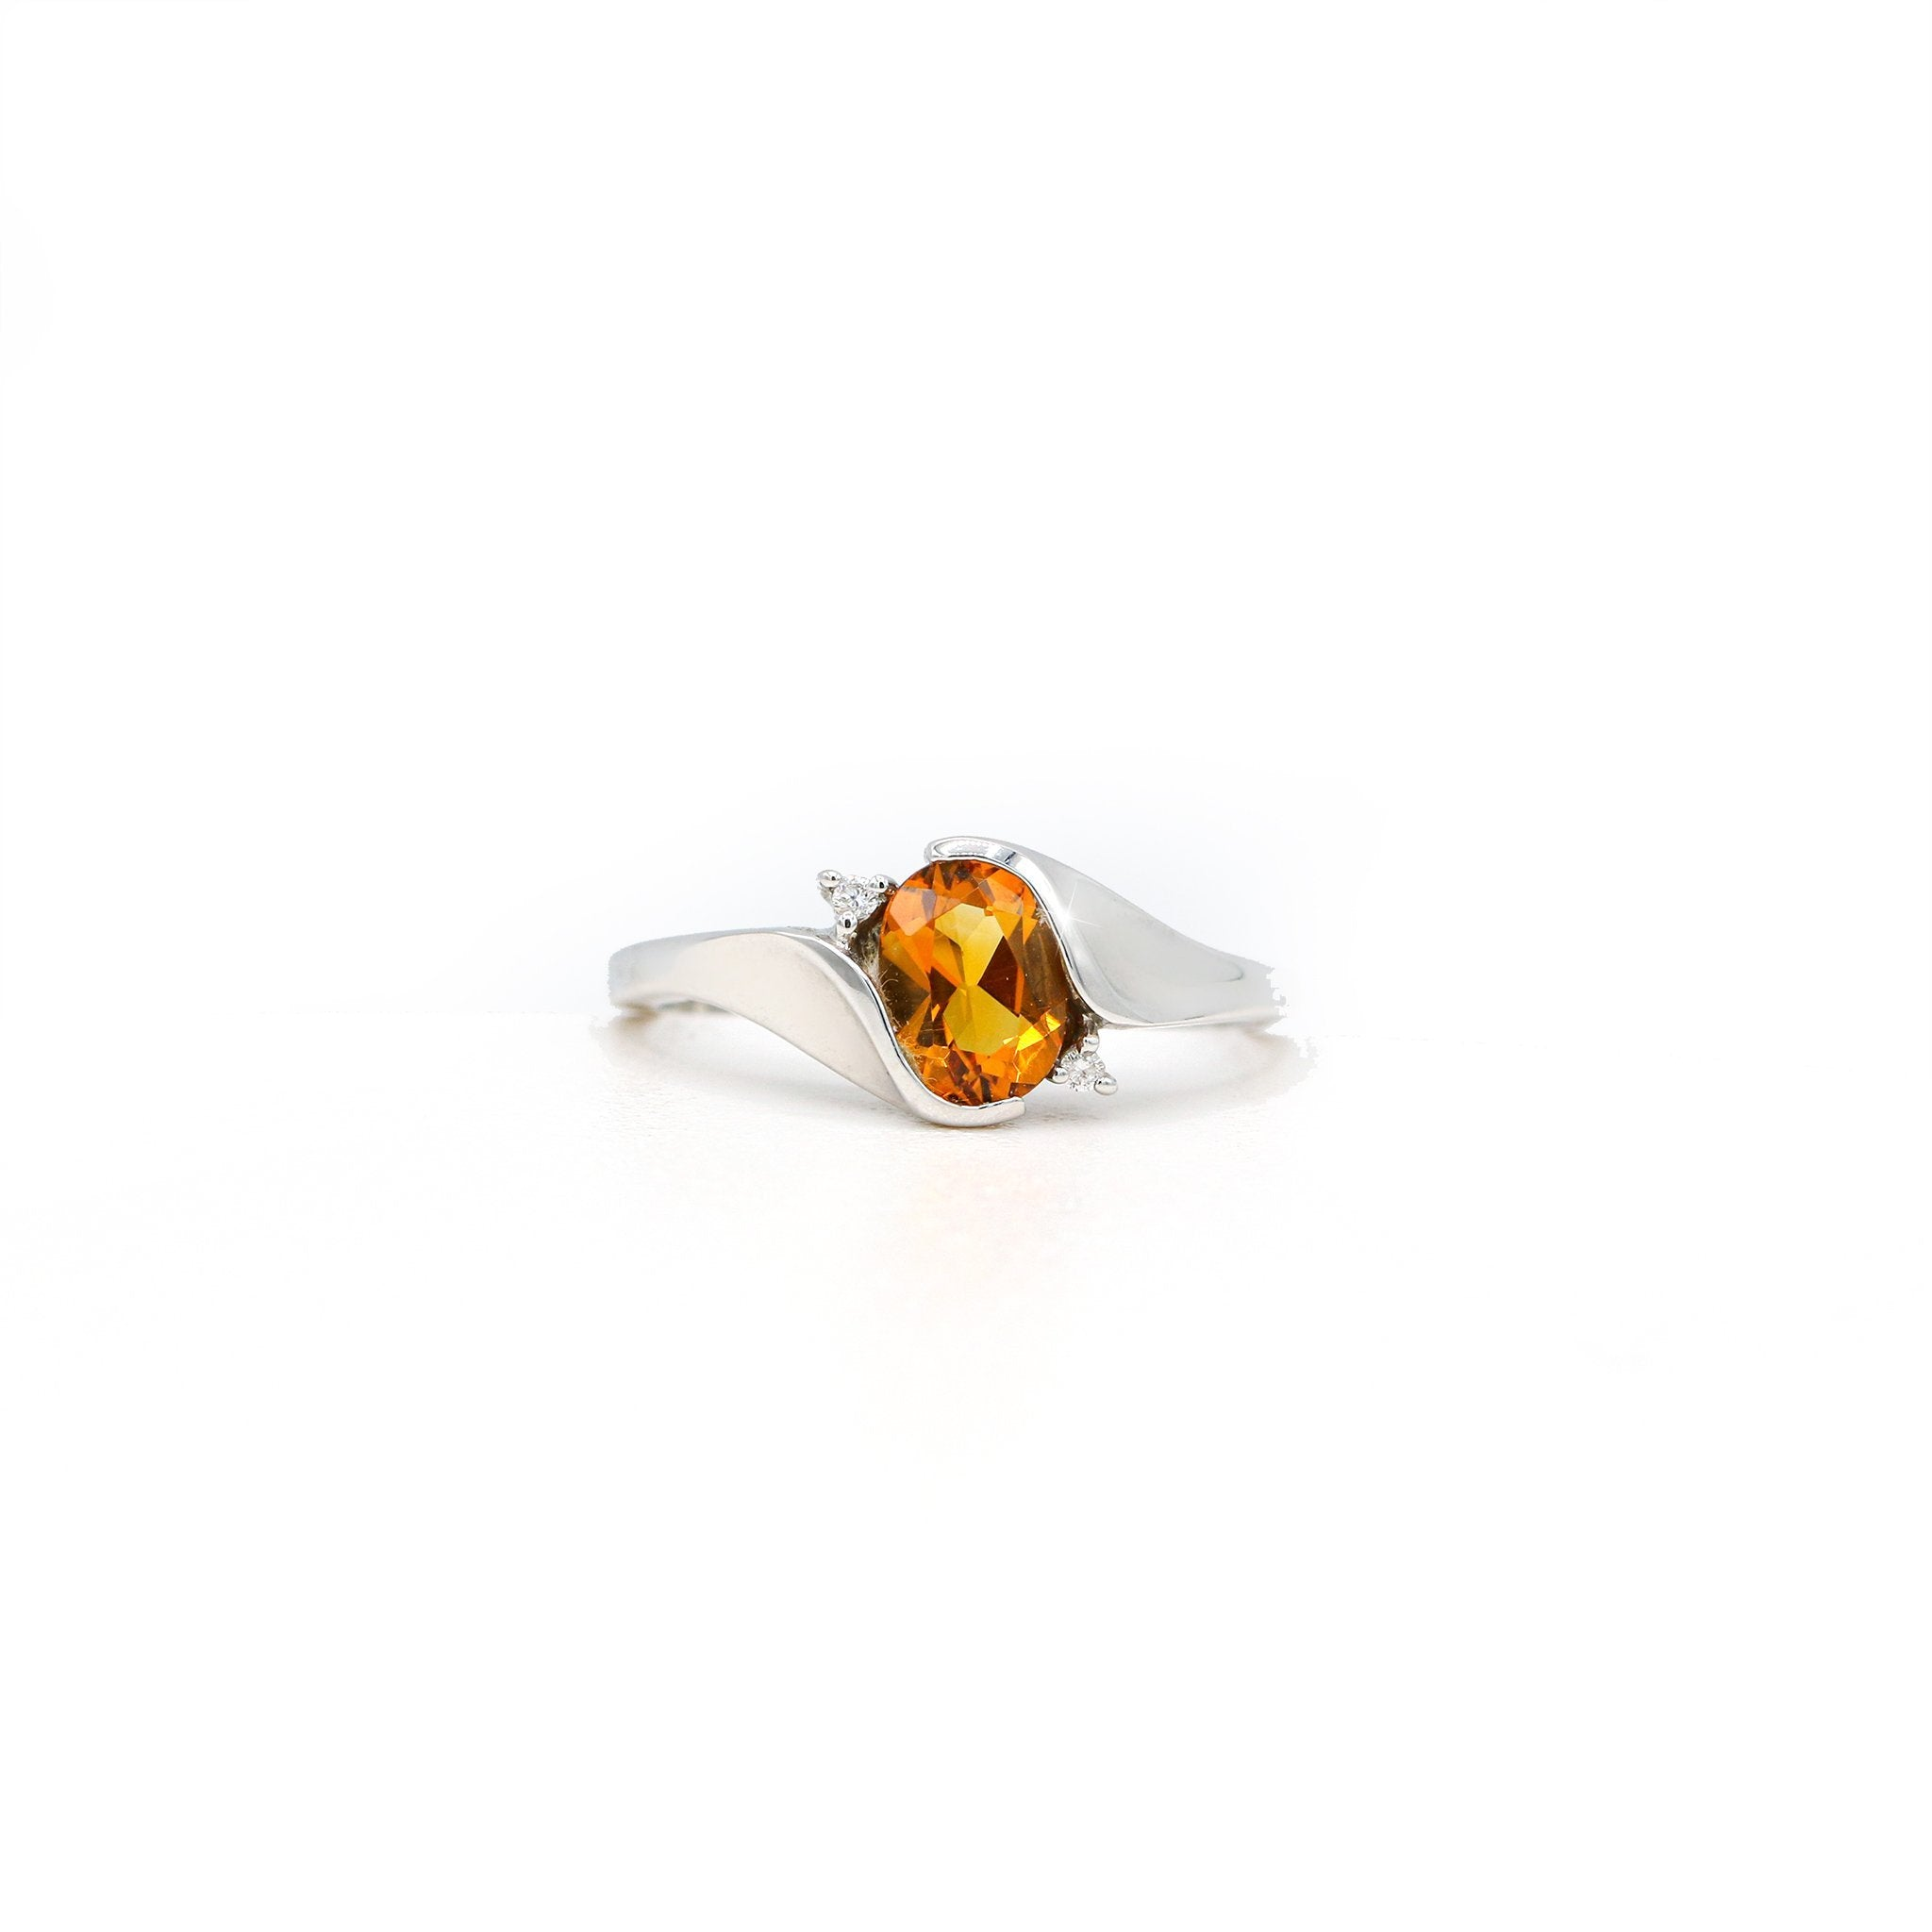 Assiduous 10K White Gold Oval Citrine Diamond Ring